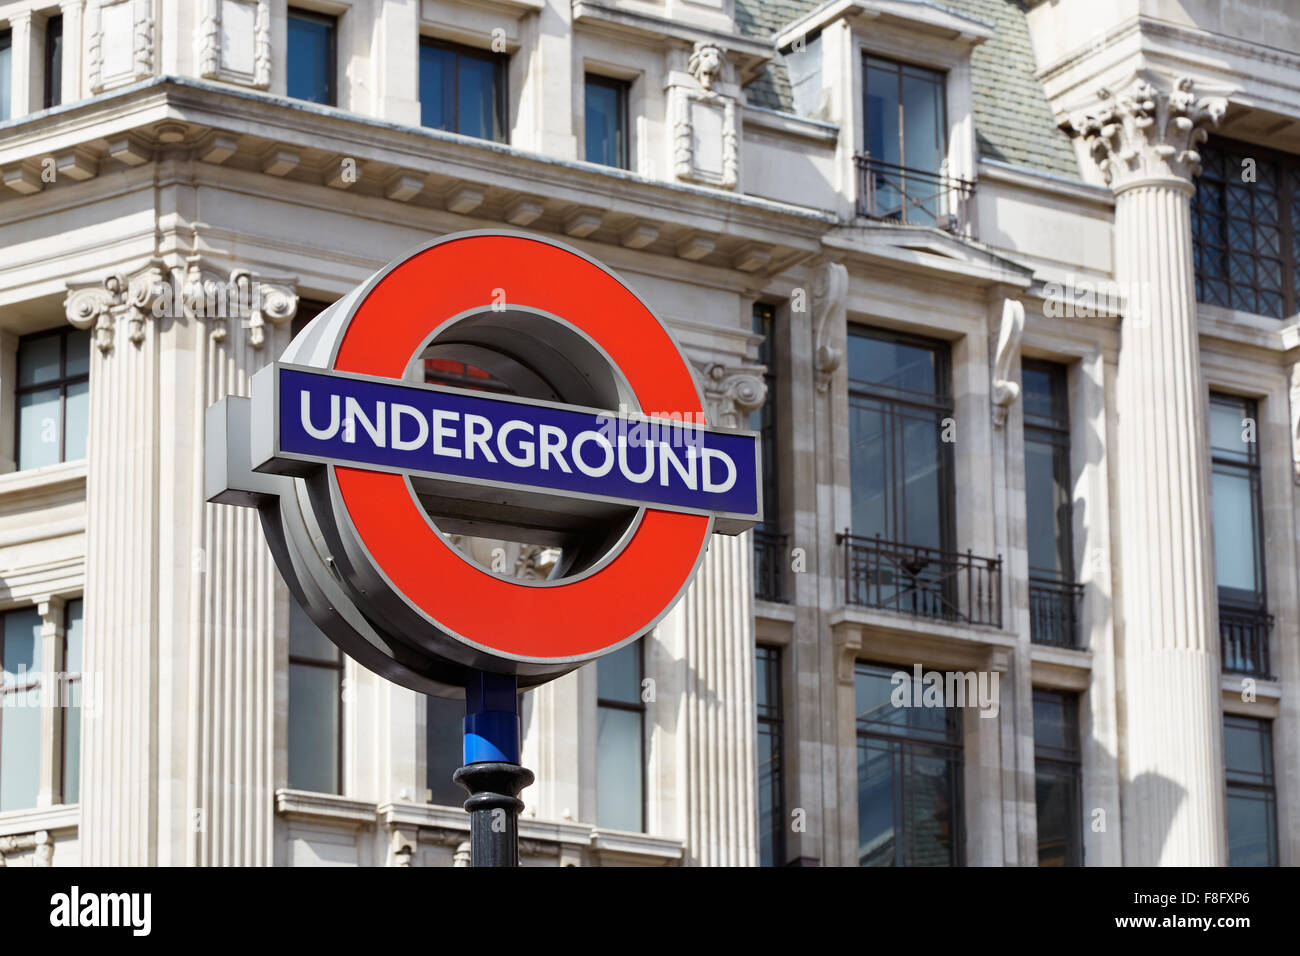 Famous London underground sign with architecture background - Stock Image